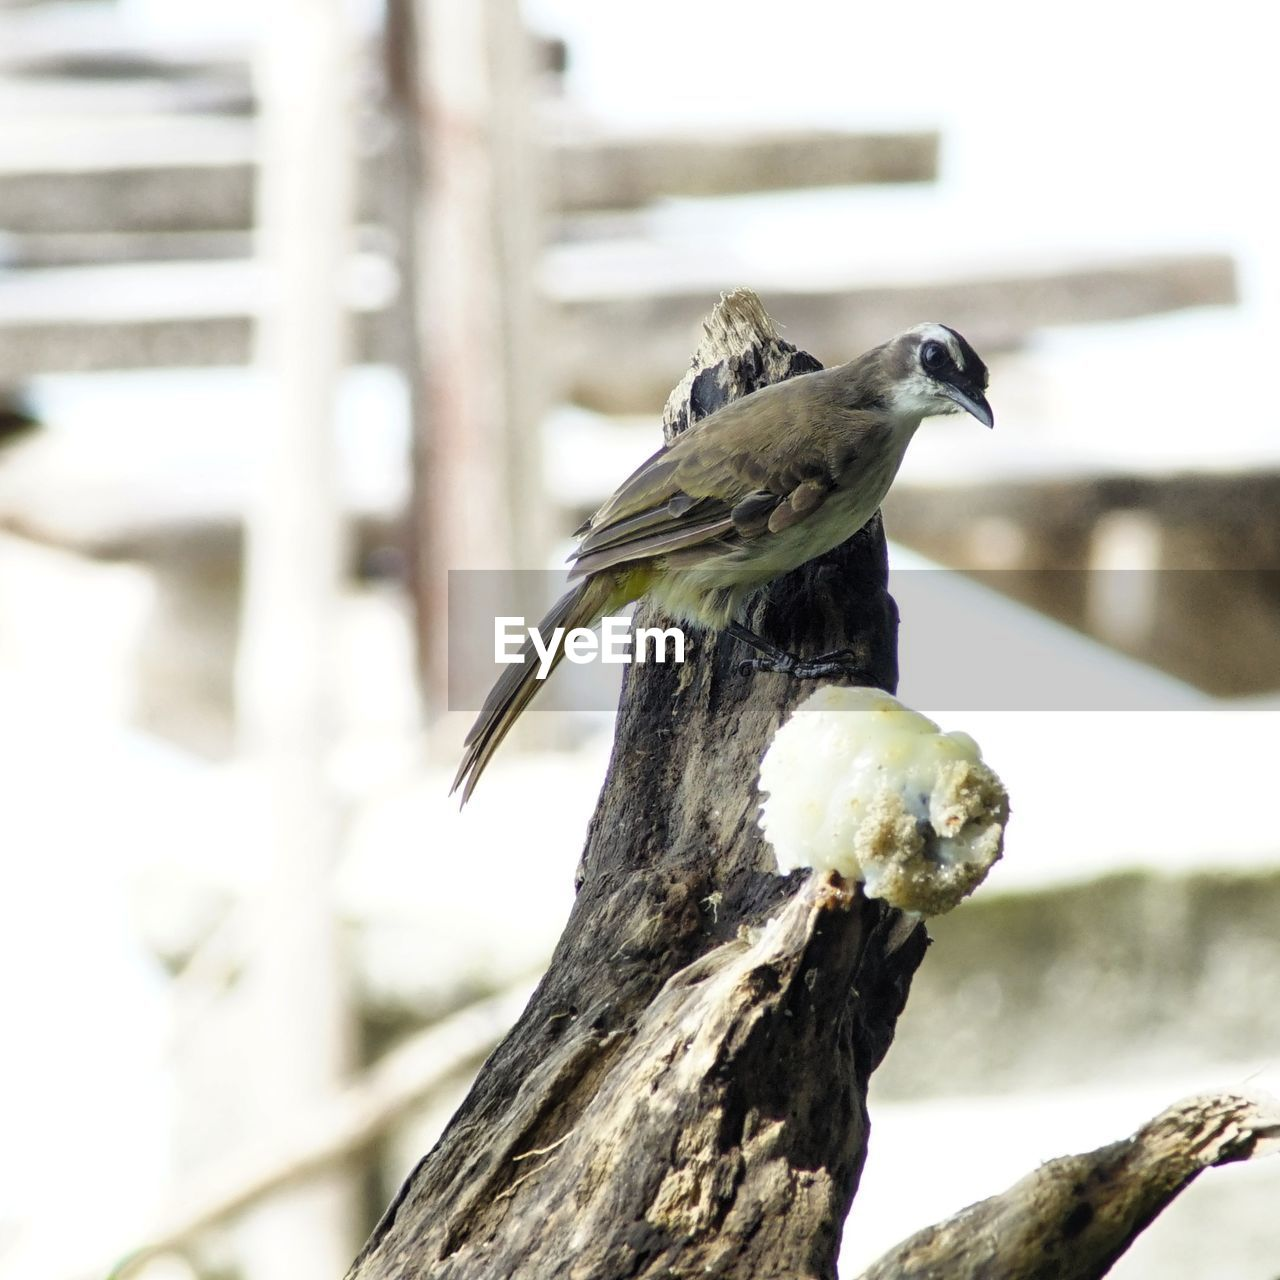 animal wildlife, bird, animal, animal themes, vertebrate, animals in the wild, perching, one animal, focus on foreground, wood - material, no people, day, tree, nature, close-up, outdoors, branch, plant, full length, side view